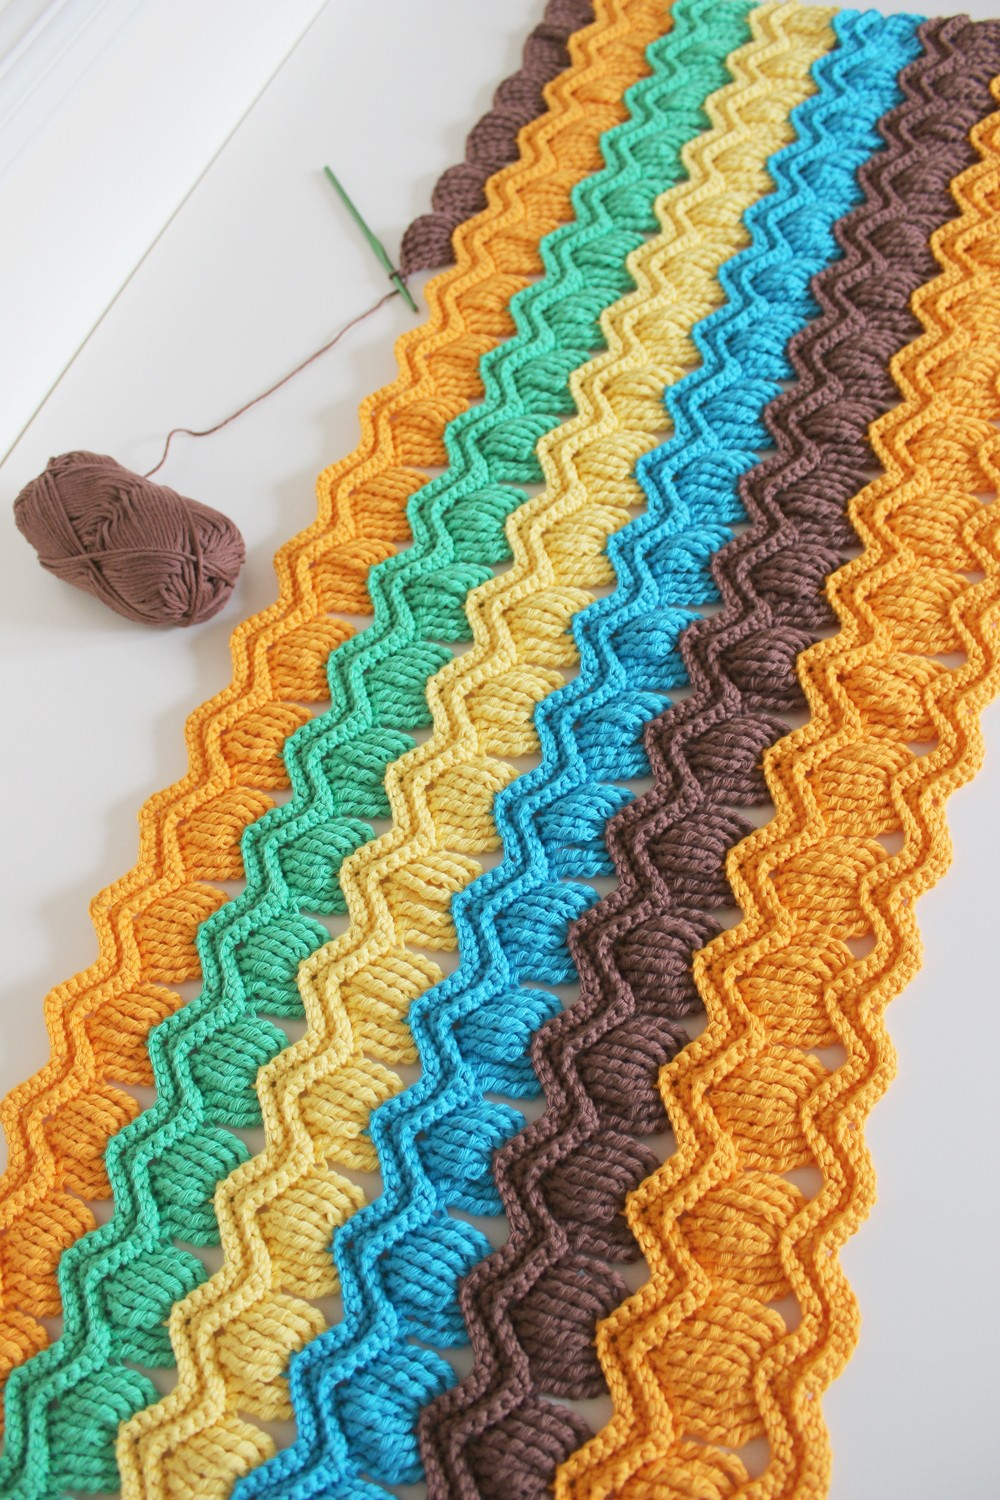 Crochet Patterns Ripple Blanket : Free Pattern] Crochet Vintage Fan Ripple Stitch